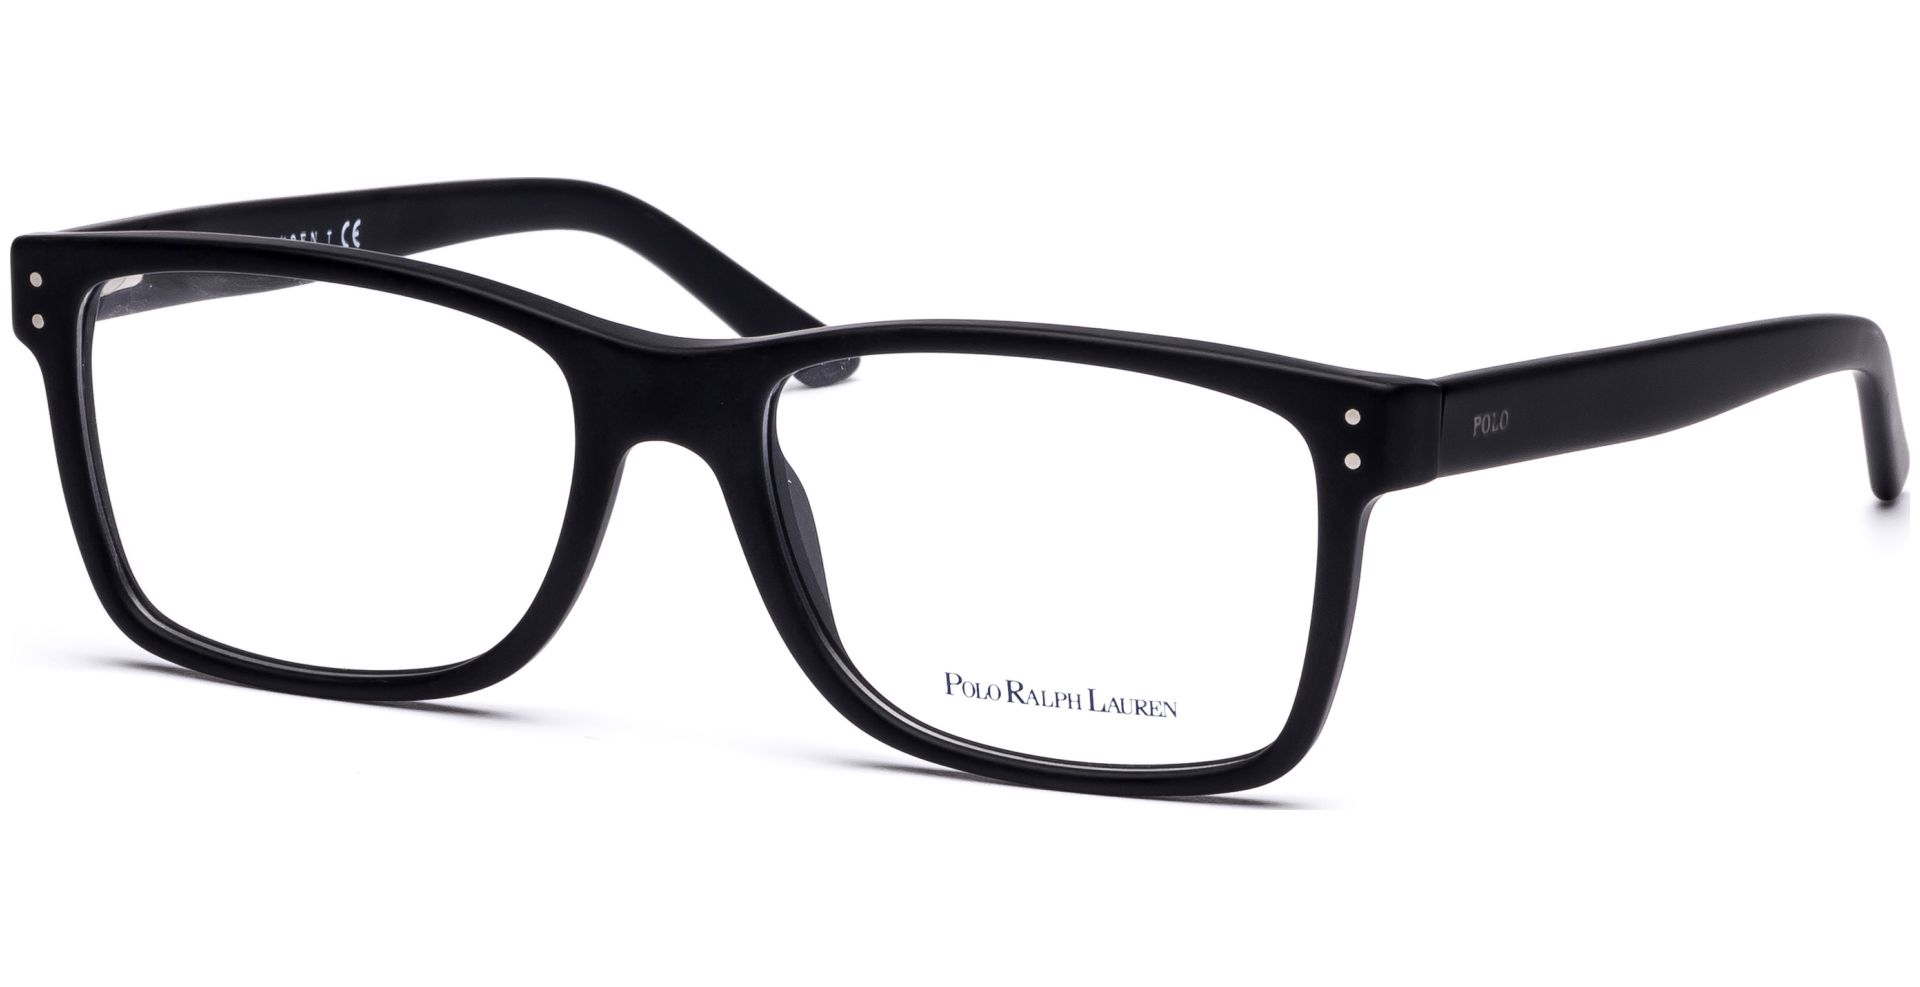 Polo - Ralph Lauren - PH2057 5284 5518 Large Matte Black - von Lensbest